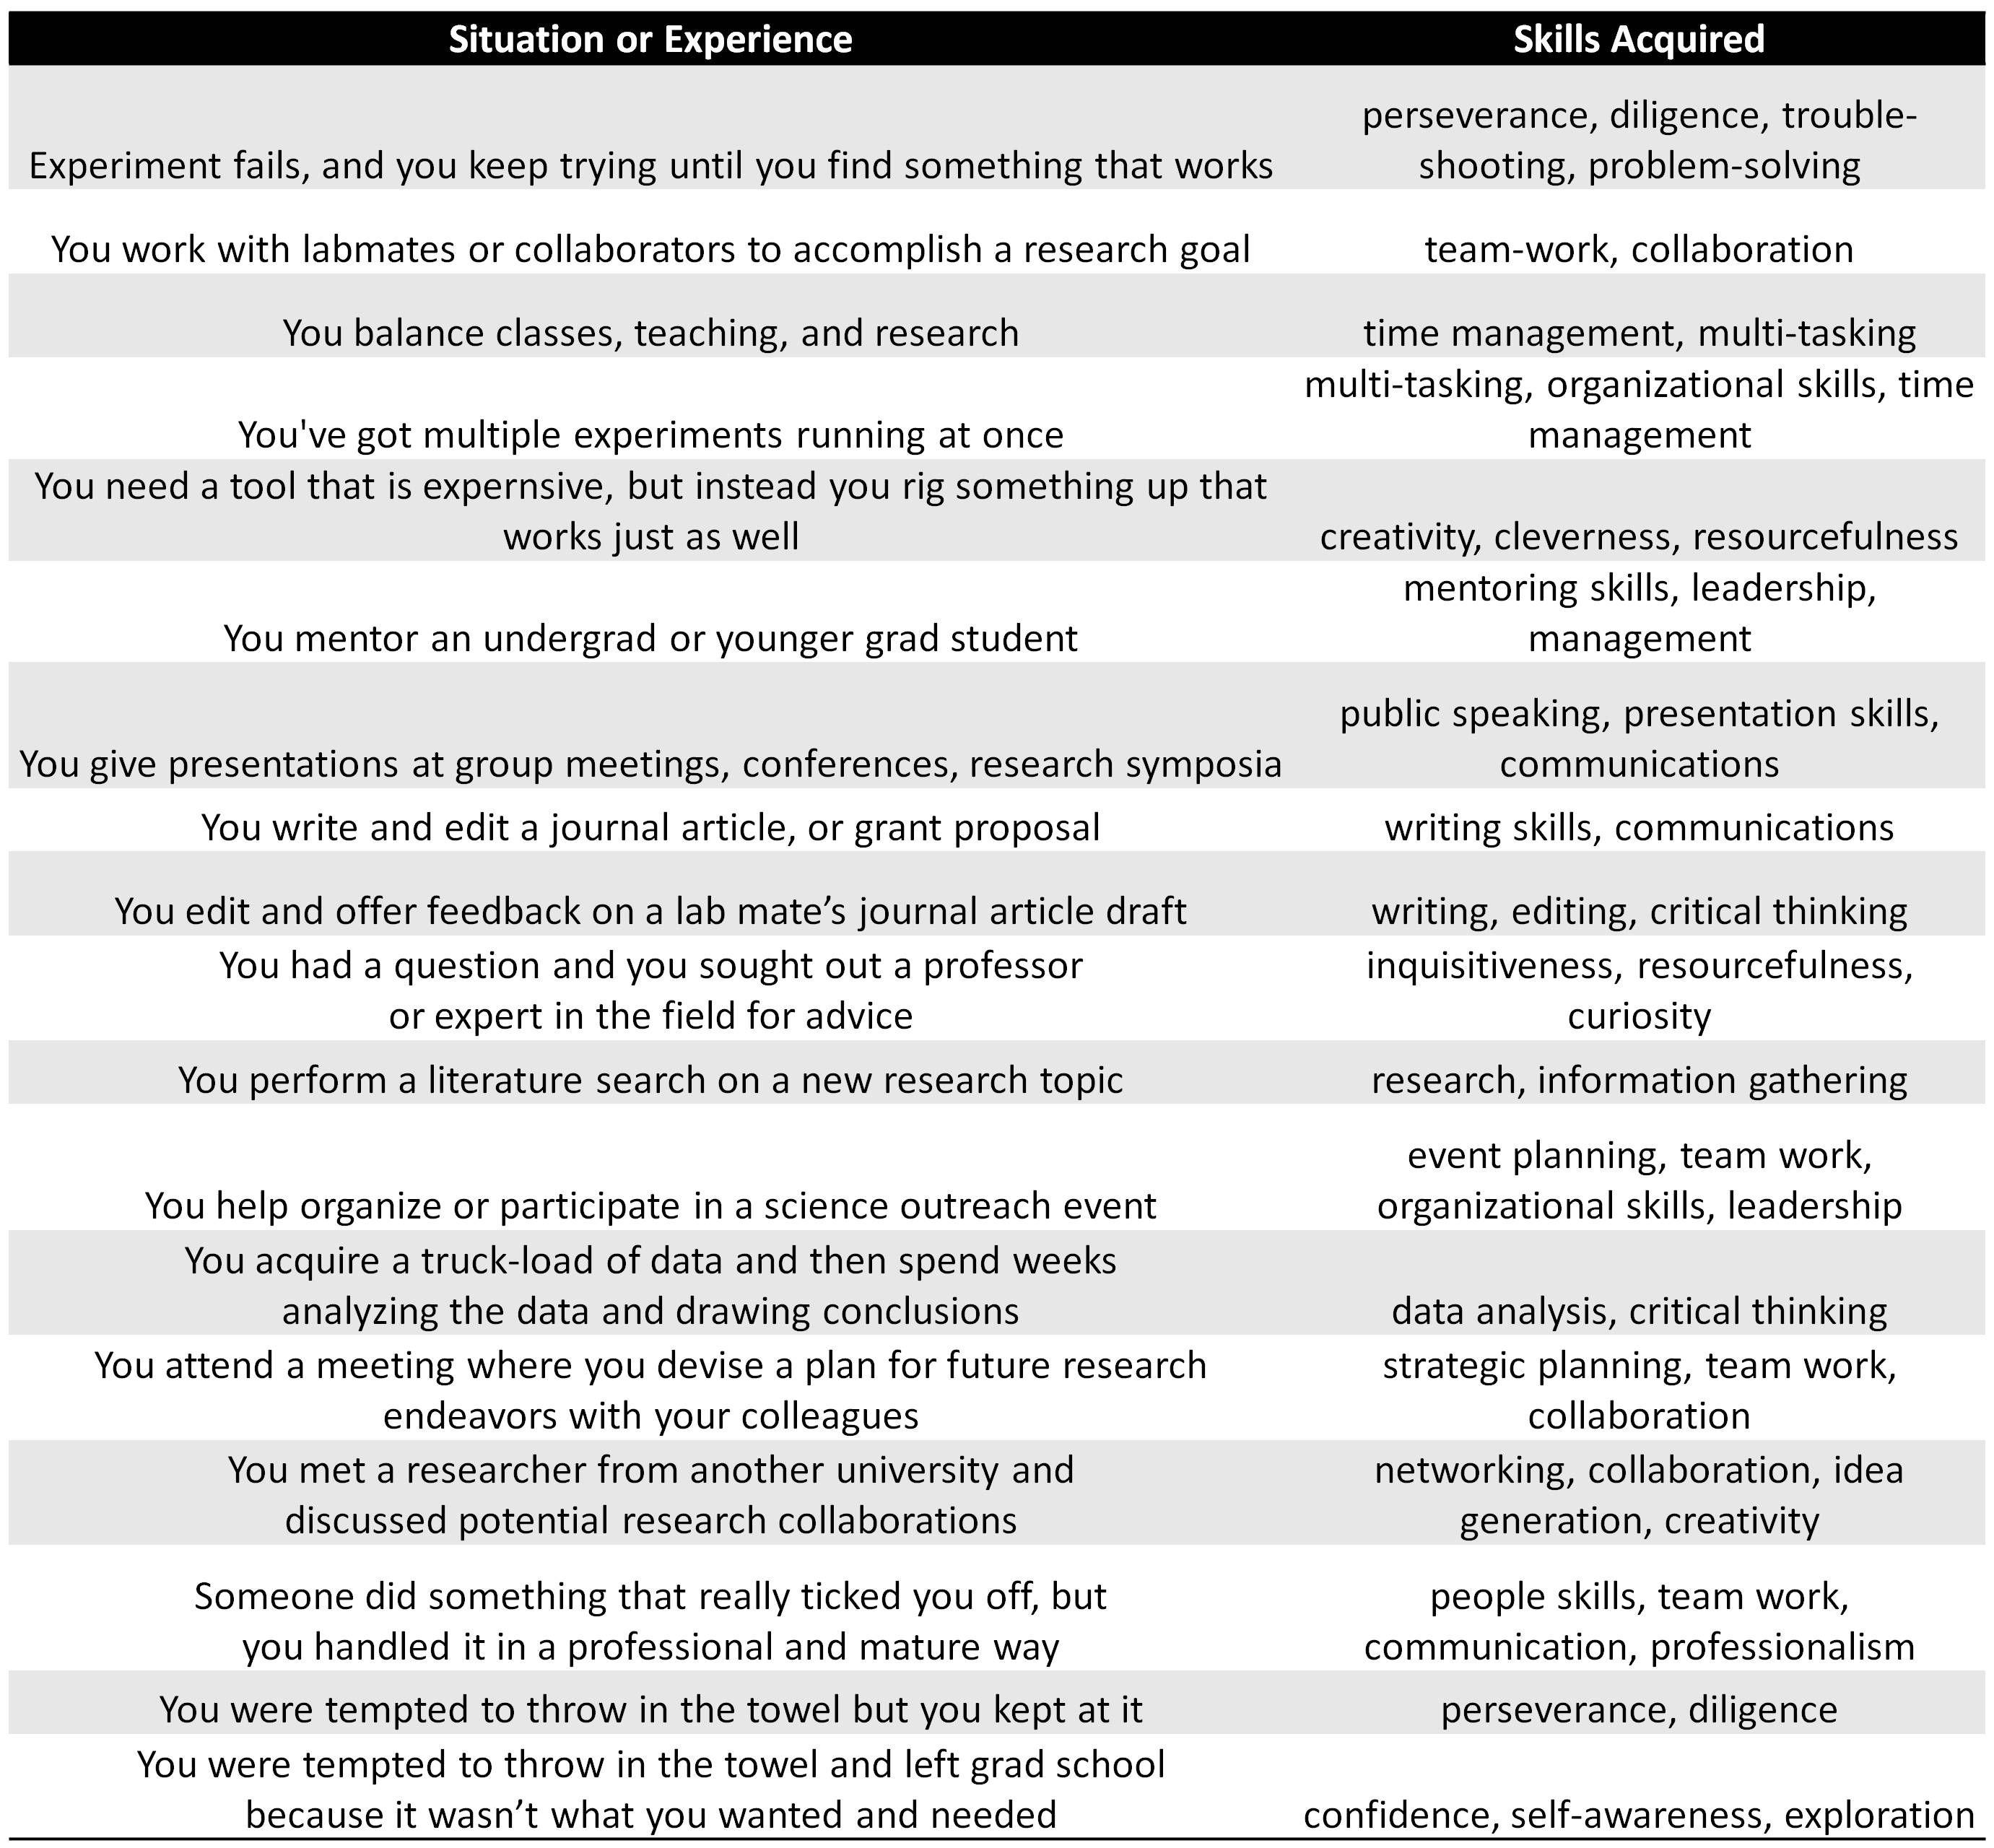 worksheet Transferable Skills Worksheet 5c23555e68fd3bc81539d4703ef96d7a jpg 1000 images about transferable skills on pinterest career images